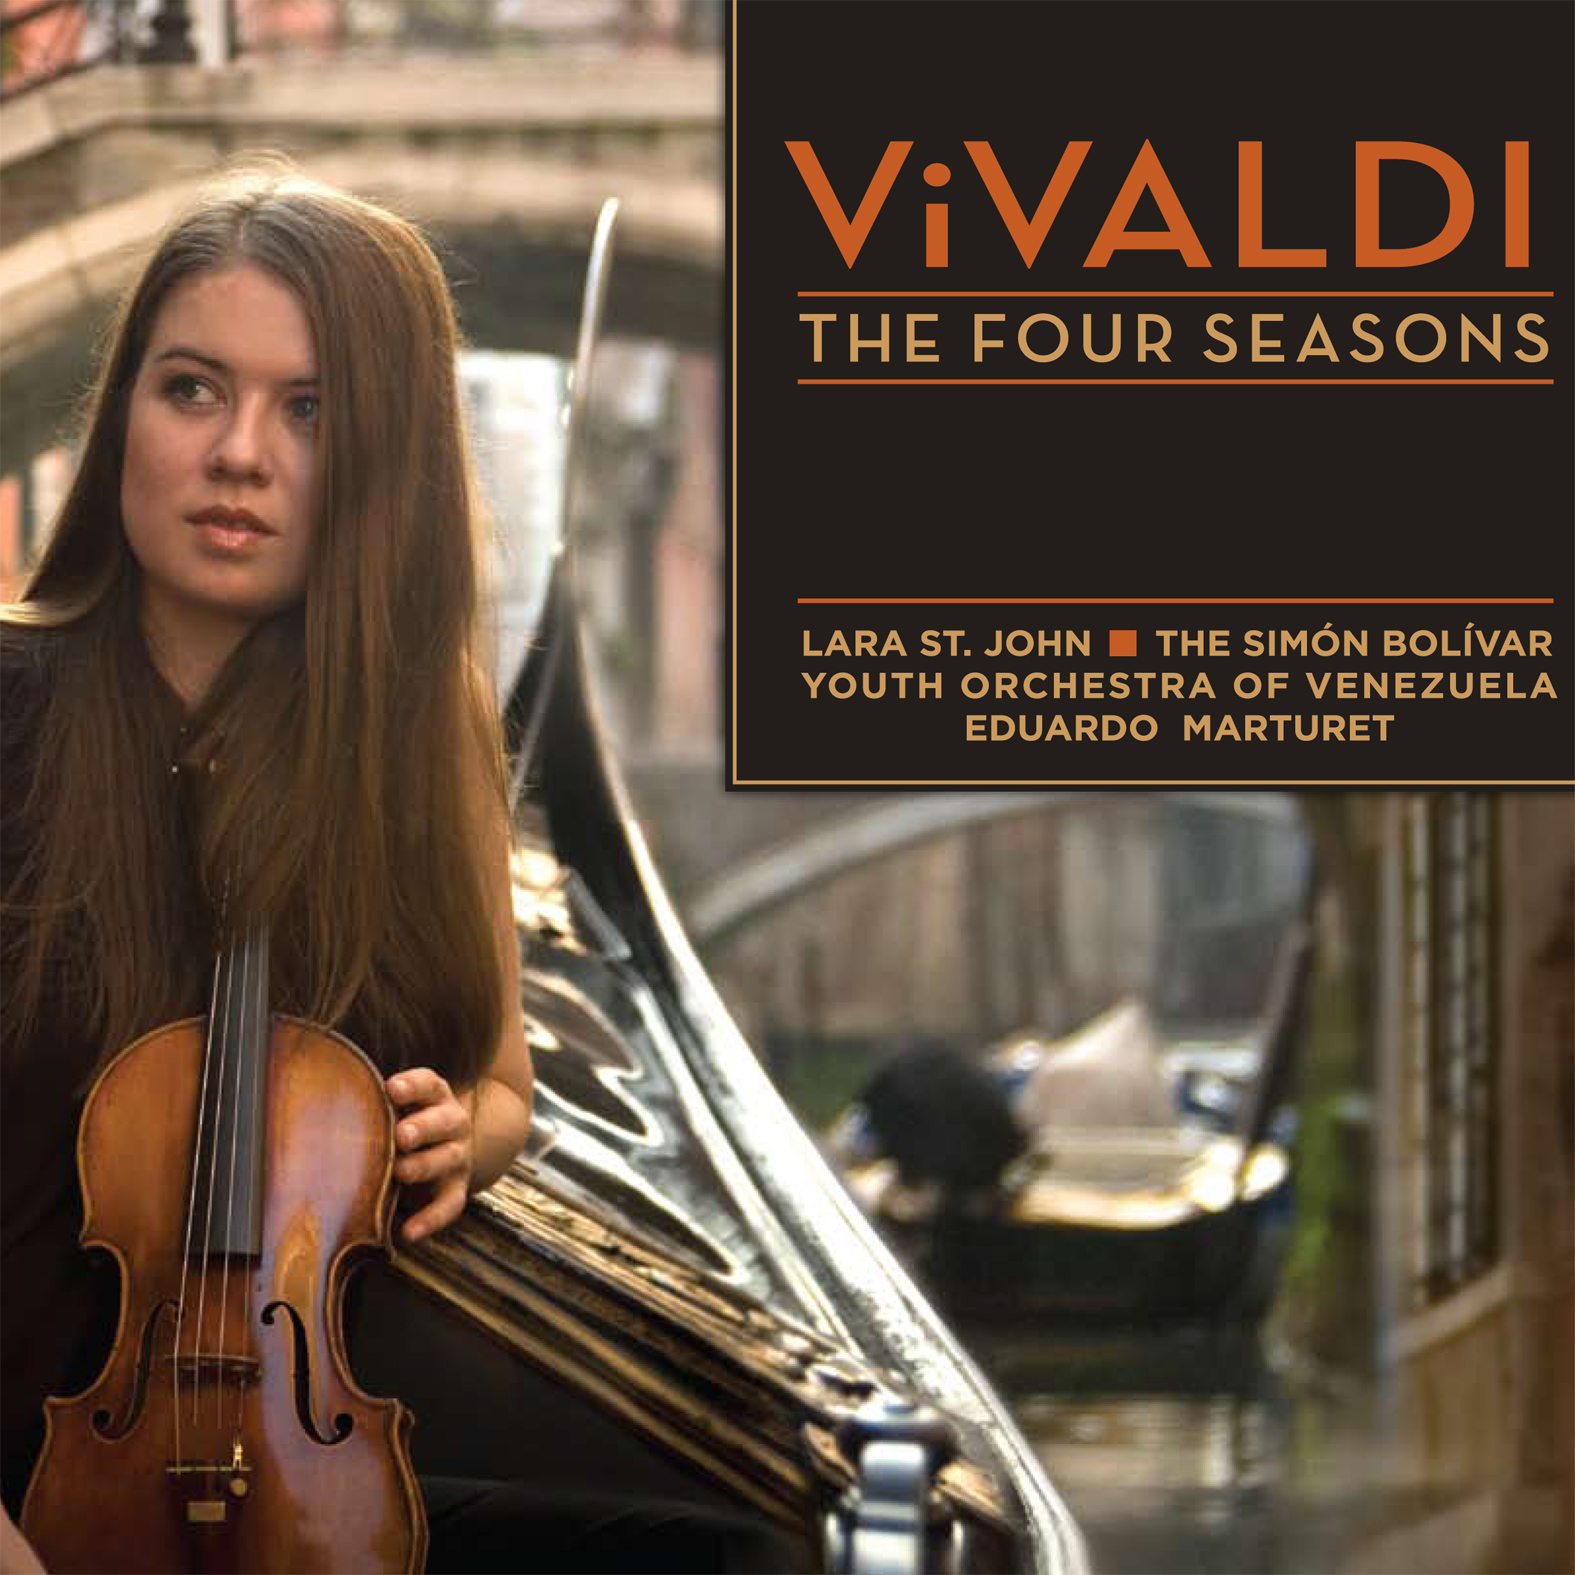 four seasons by vivaldi essay Antonio vivaldi spring from the four seasons analysis essay (dystopian creative writing) when you make stupid mistakes in essays like writing down afford instead of effort.